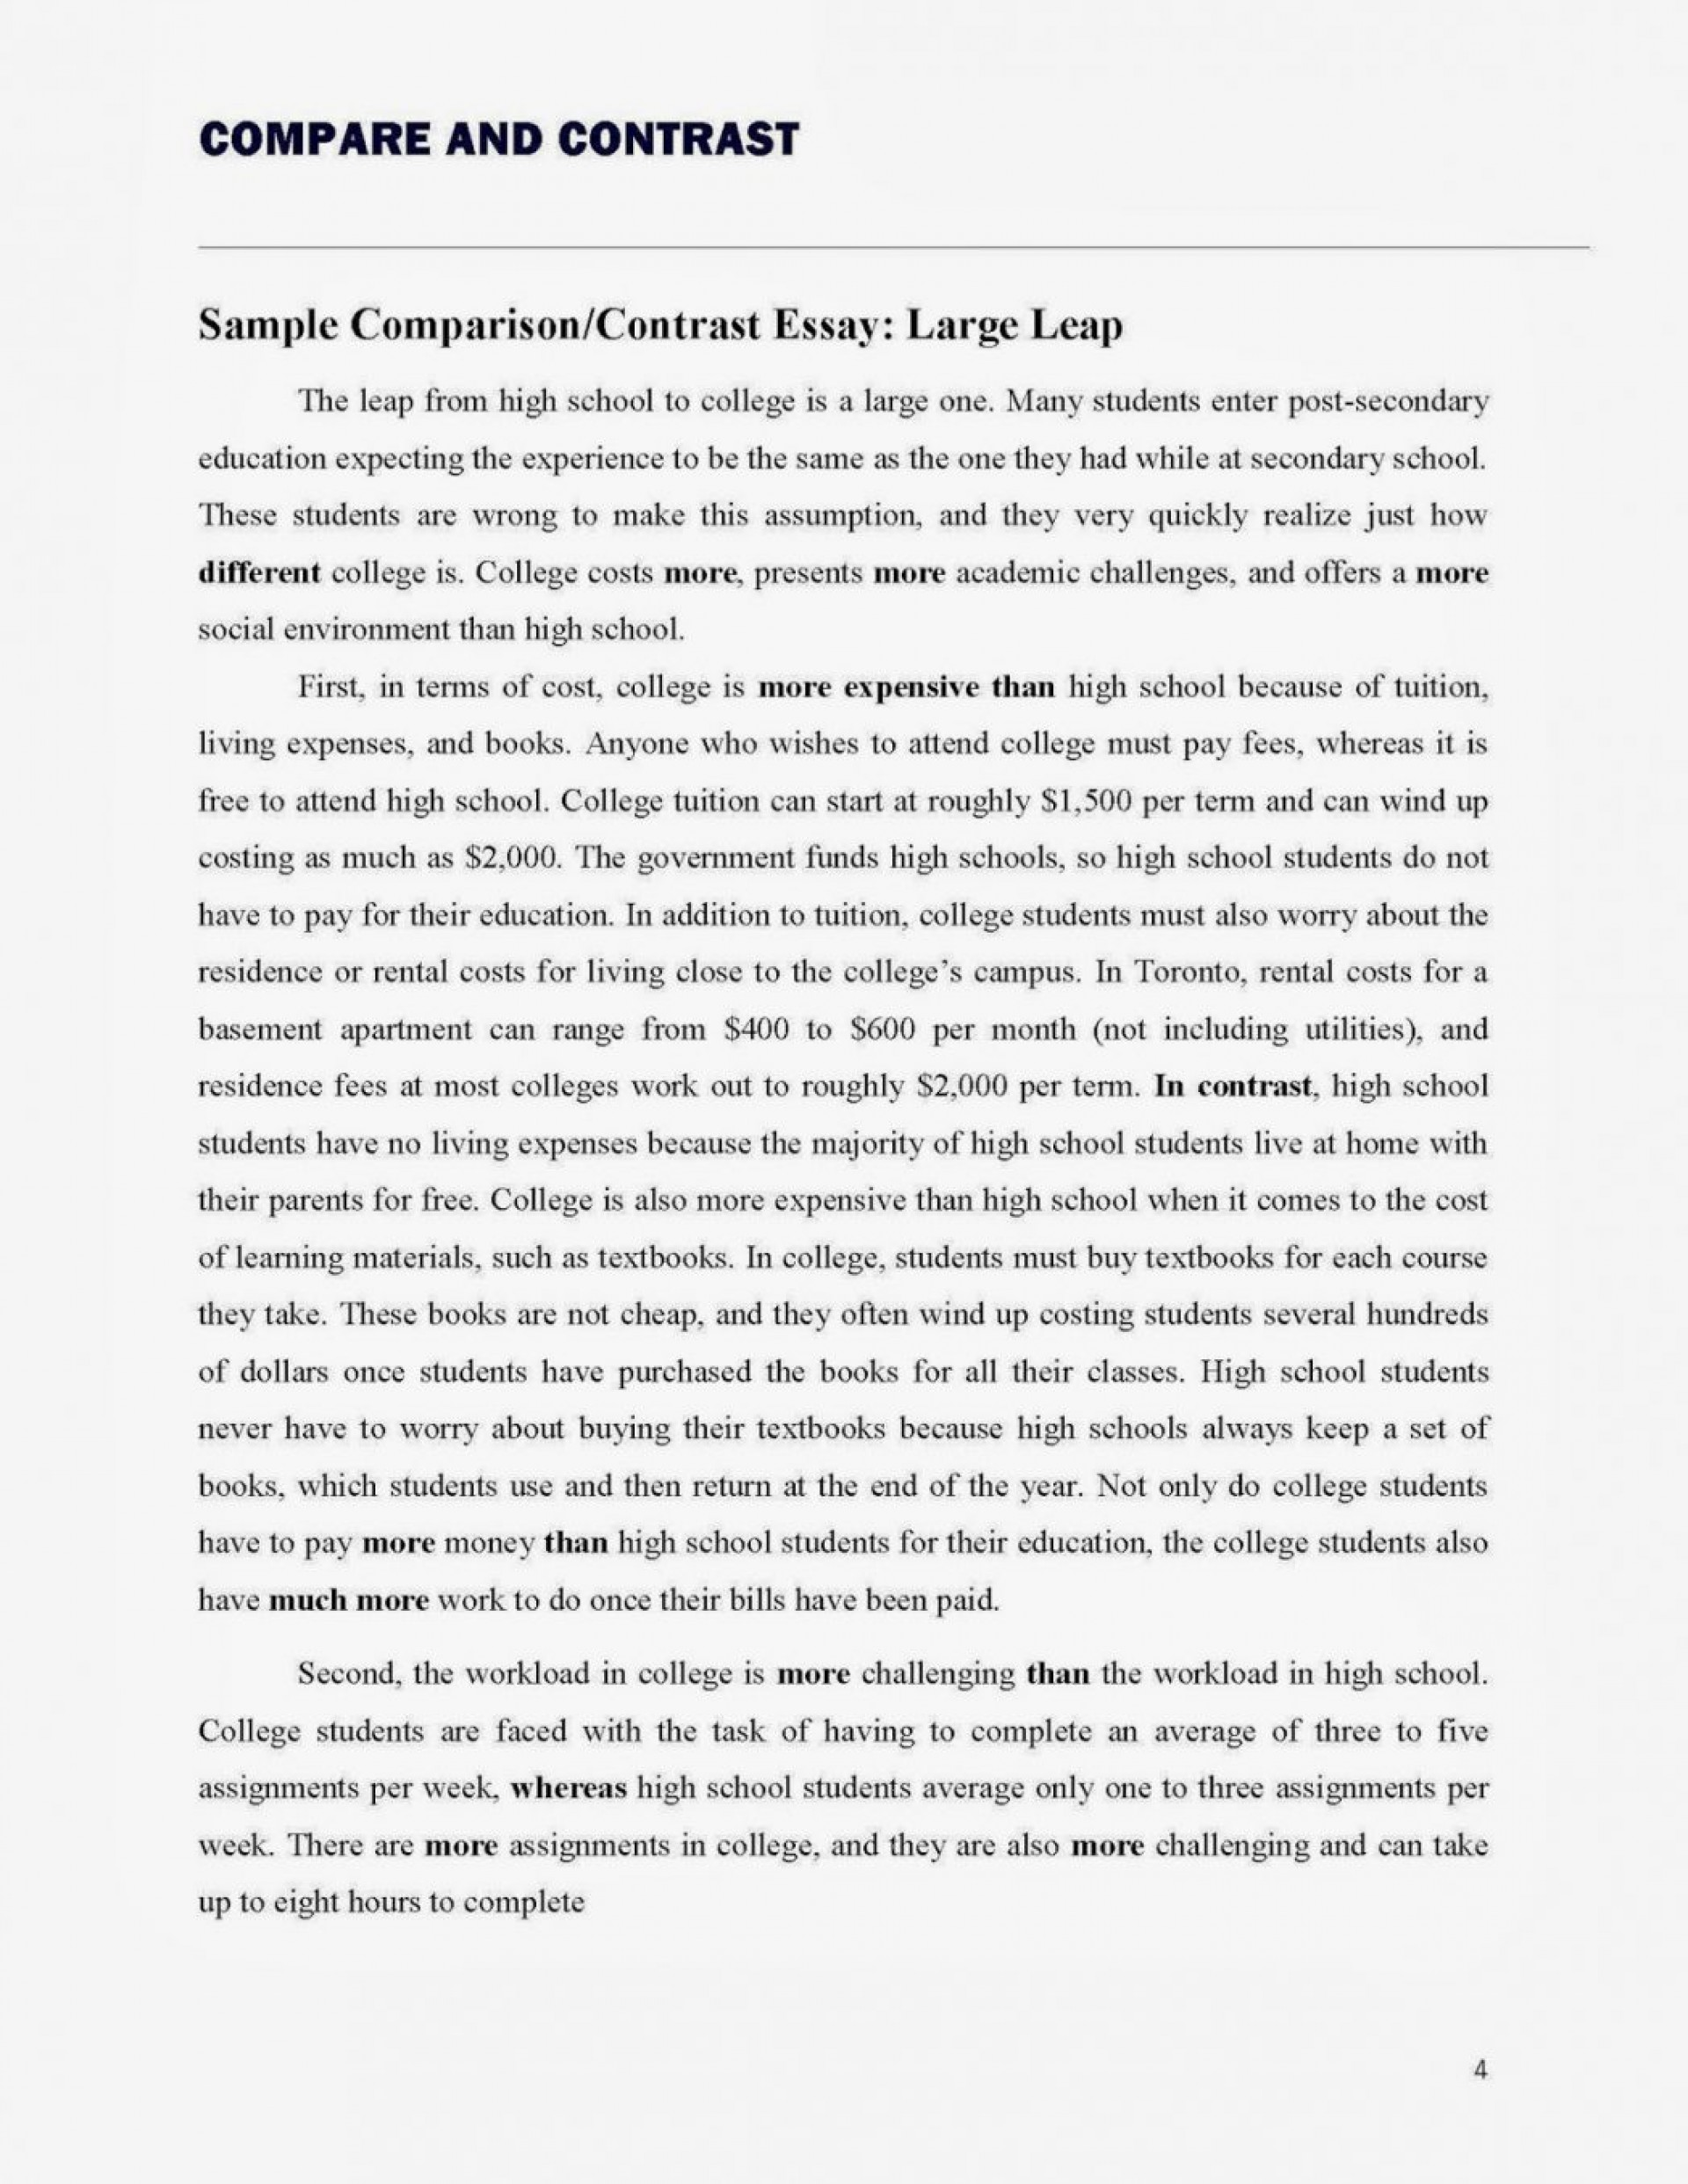 005 Compare And Contrast Essay Examples College Example Comparison That W Application Worked Phenomenal Outline For Students Introduction Paragraph 1920